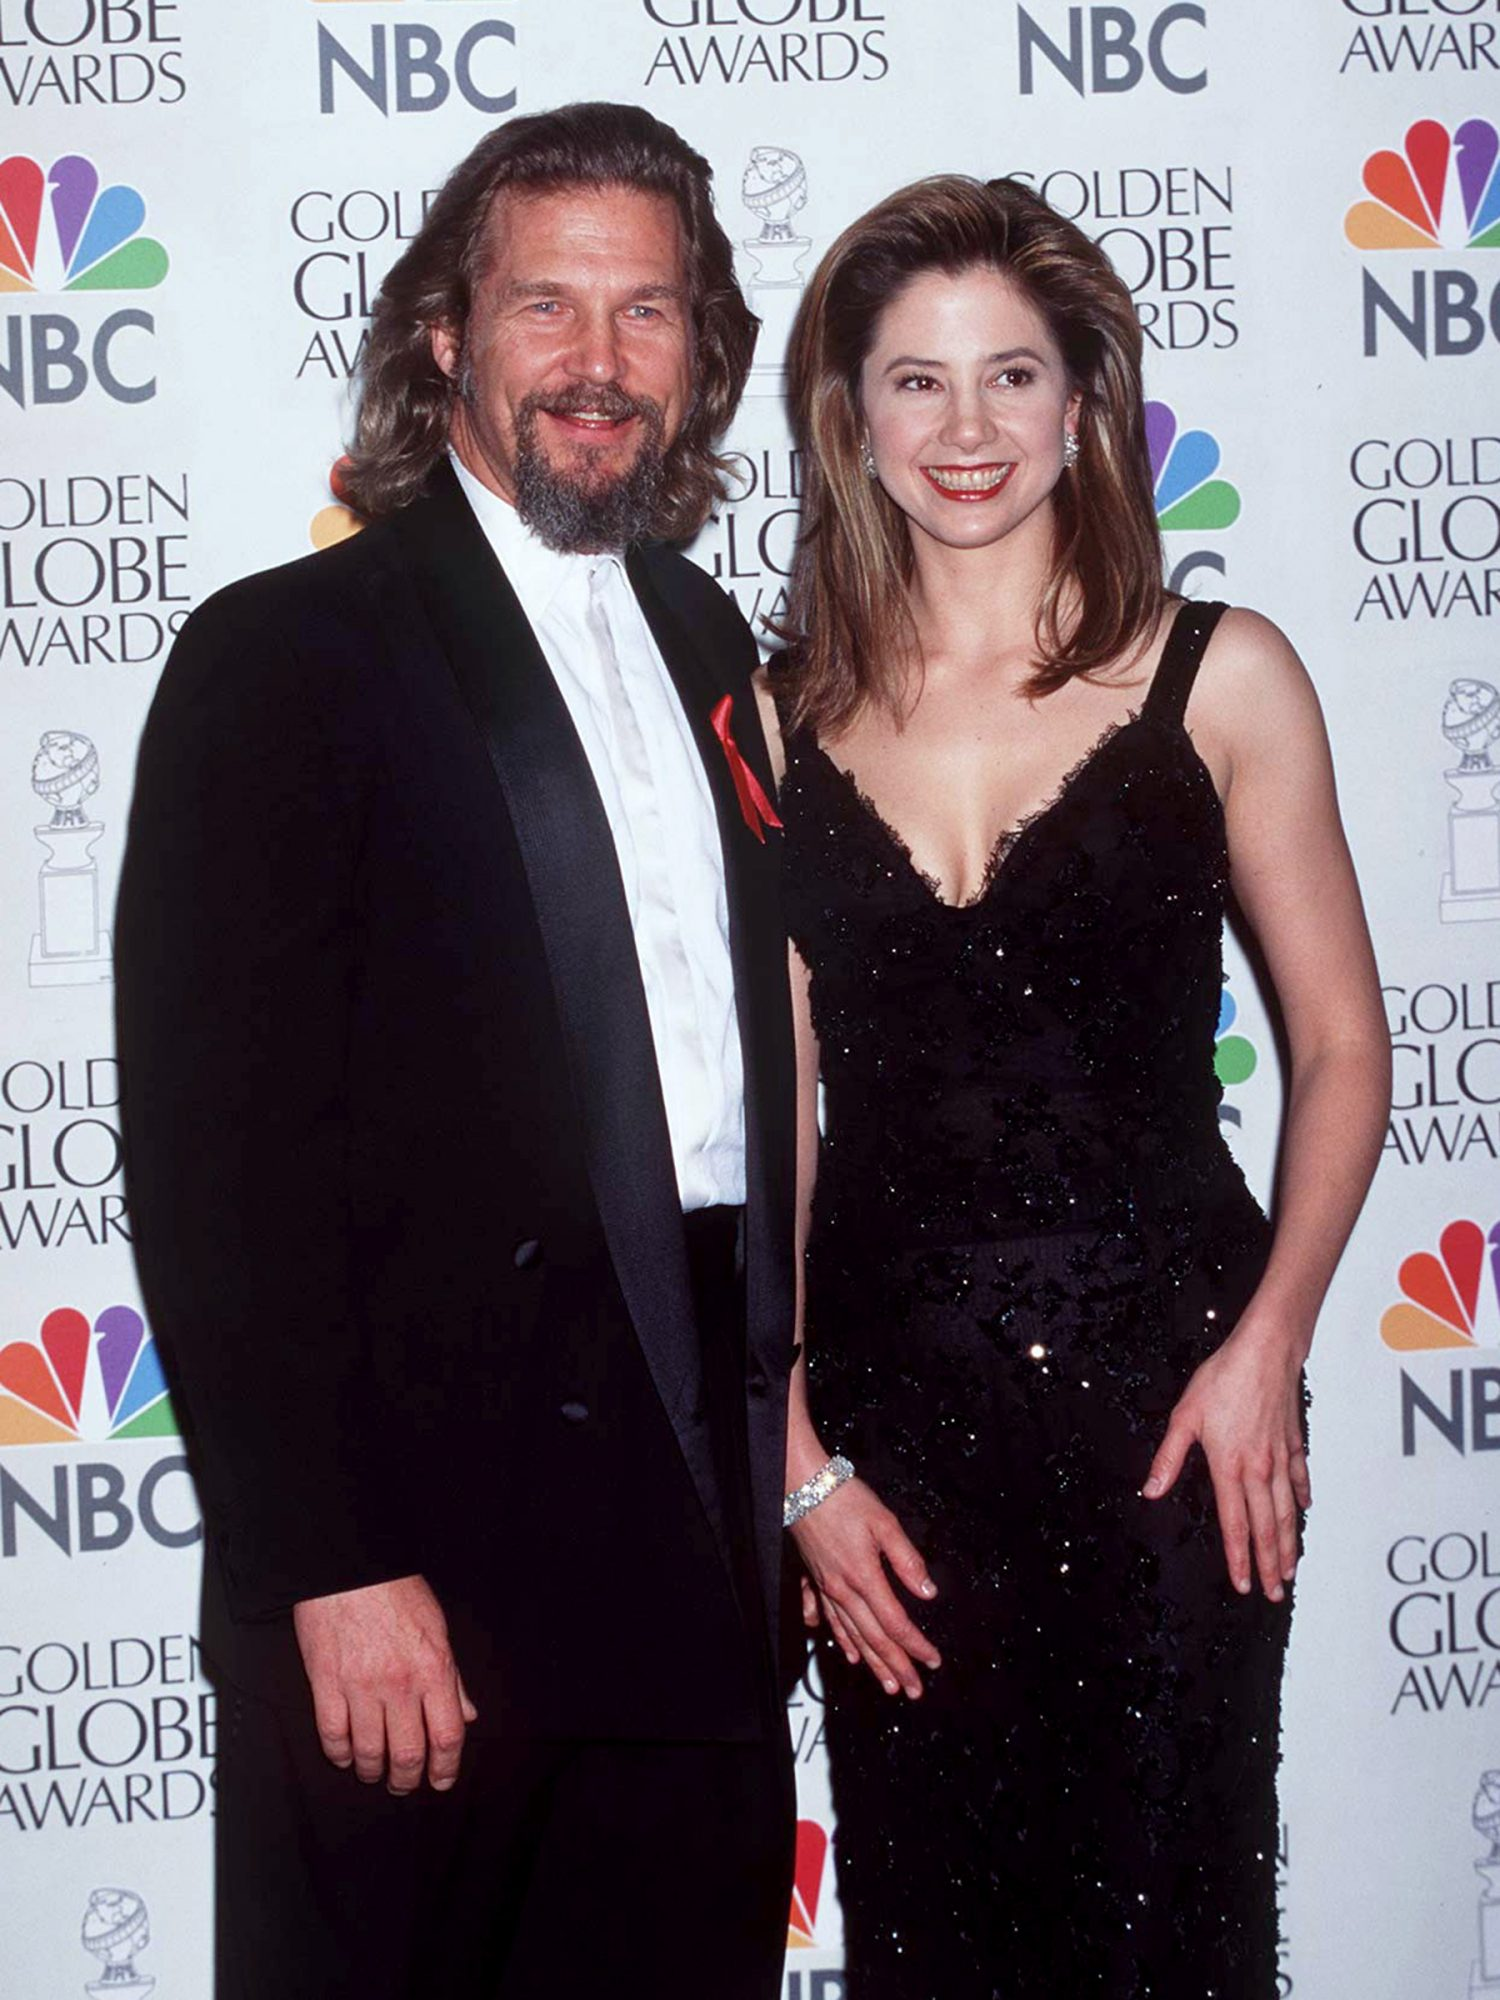 Jeff Bridges and Best Actress in a Miniseries or Television Film Nominee Mira Sorvino (Norma Jean & Marilyn)